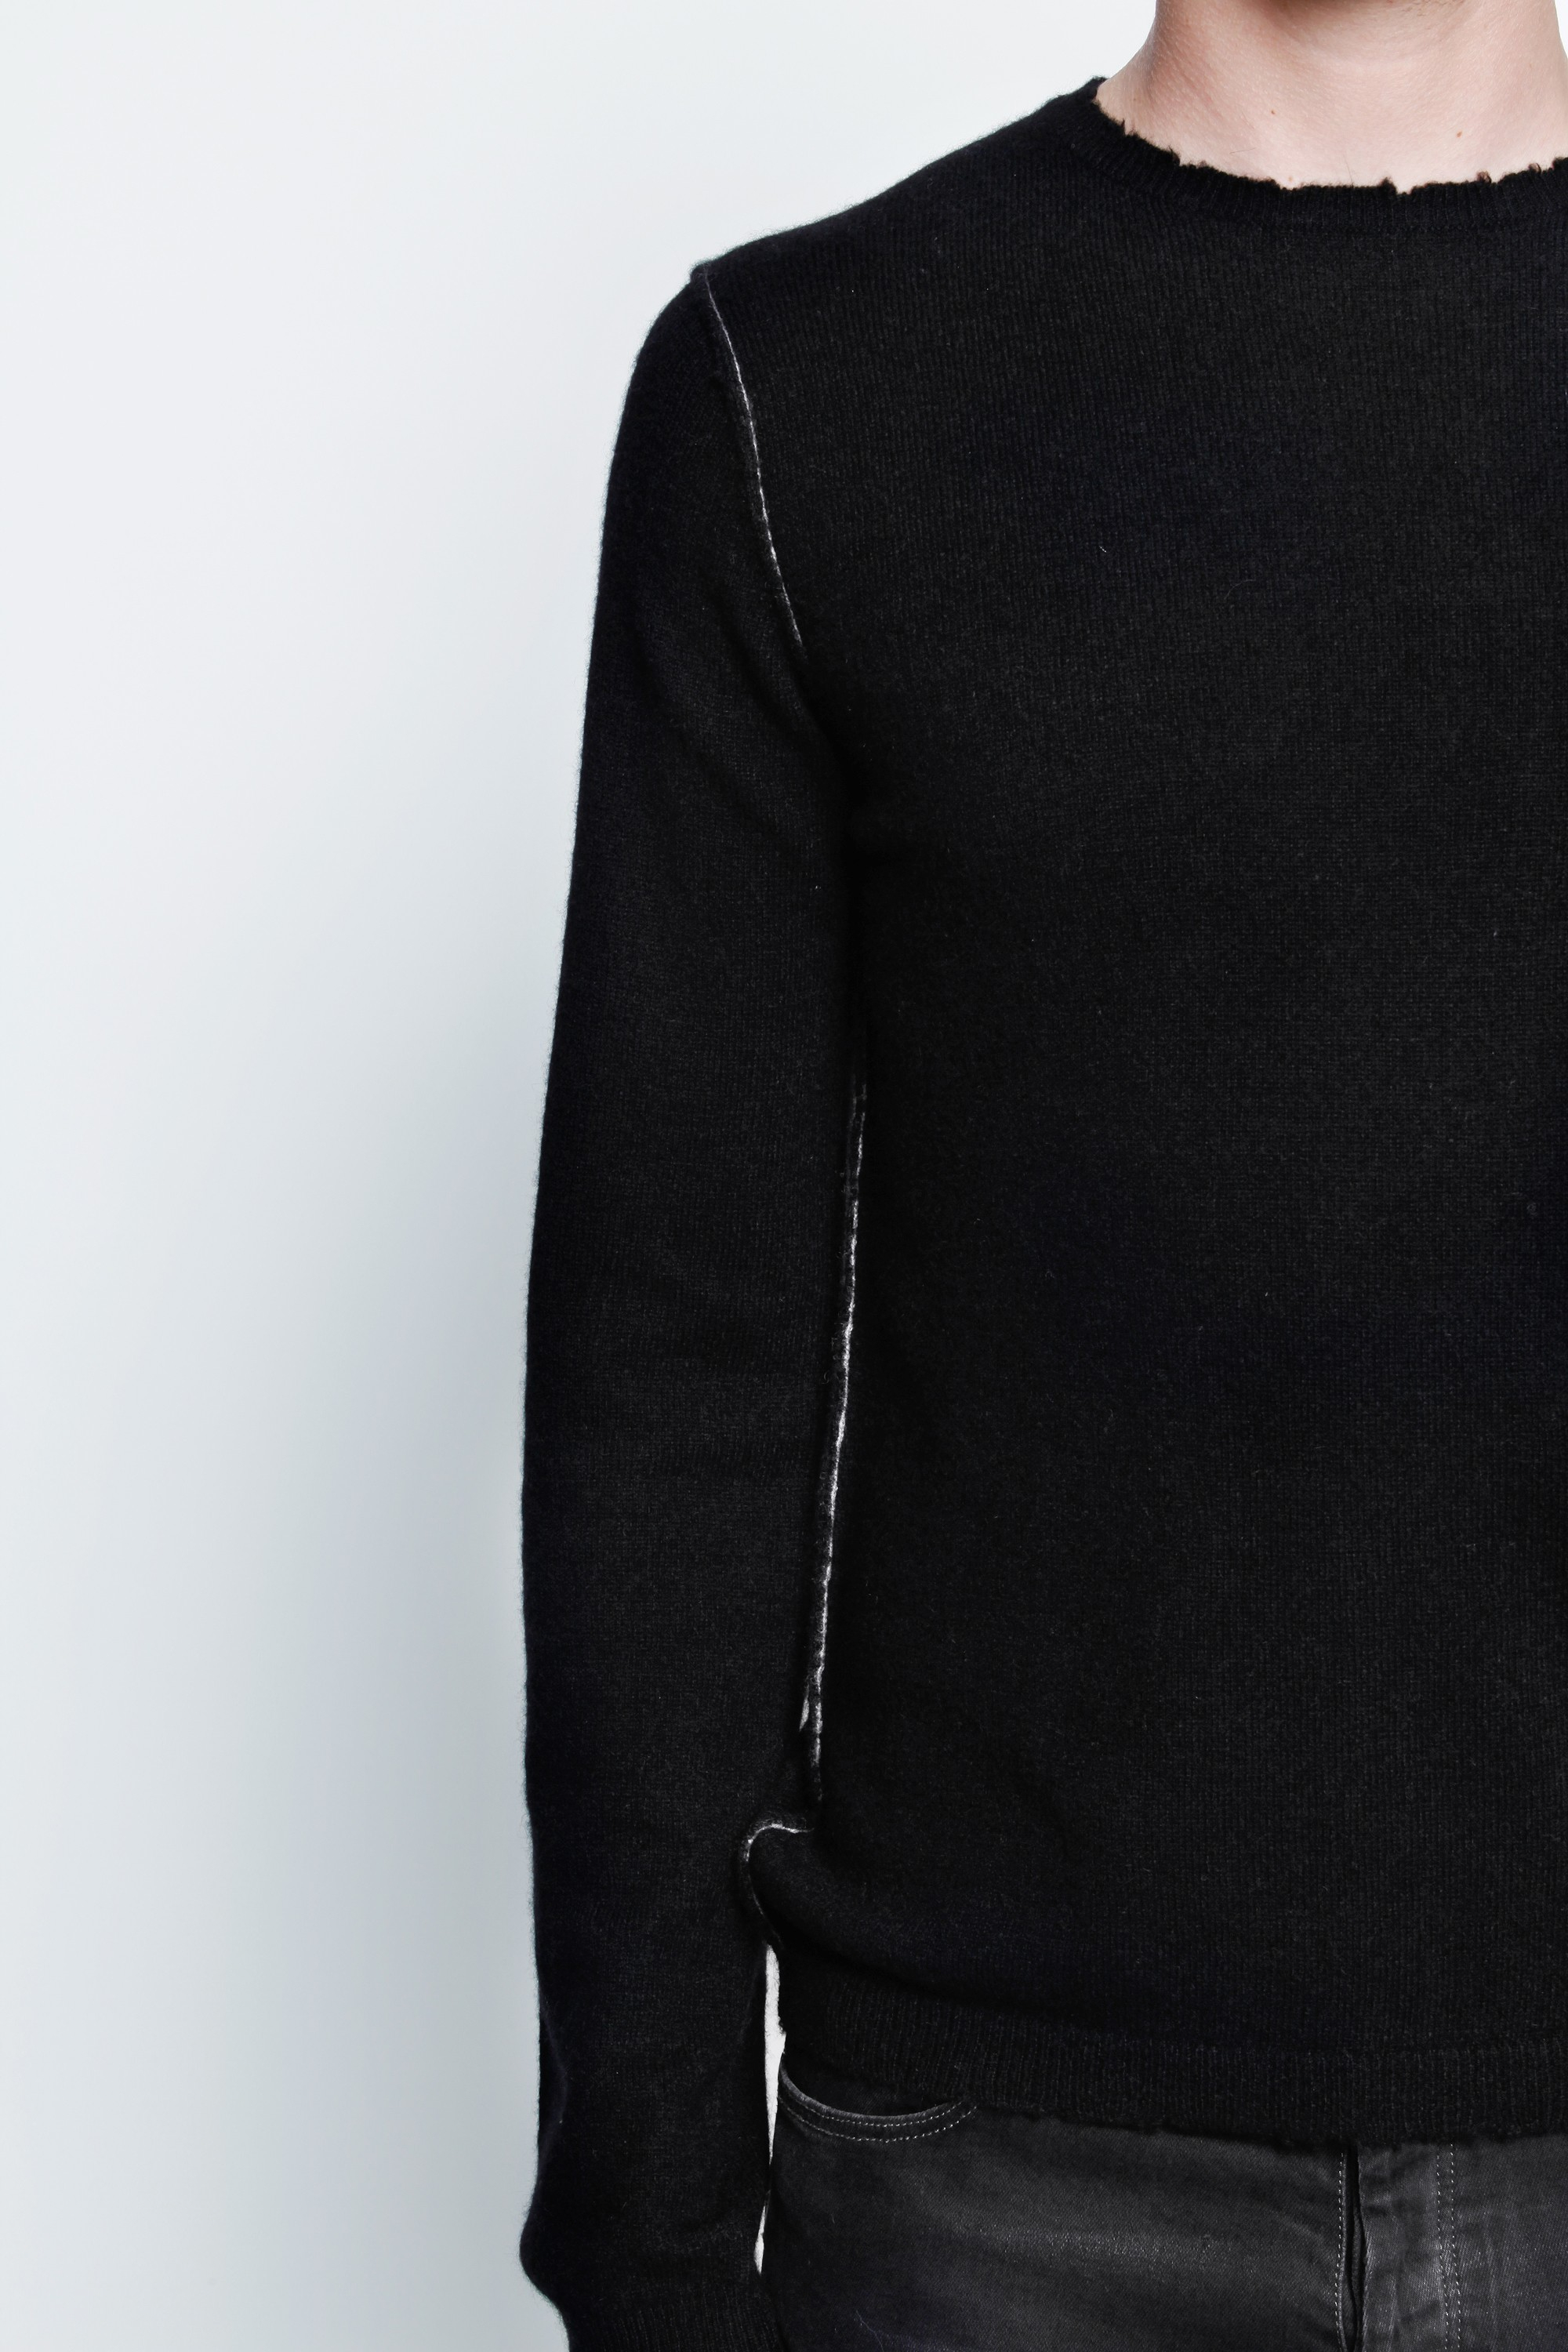 voltaire black single men Shop the latest zadig & voltaire range from the designer womenswear department at the definitive men's hair care zadig & voltaire black mirrored aviator.